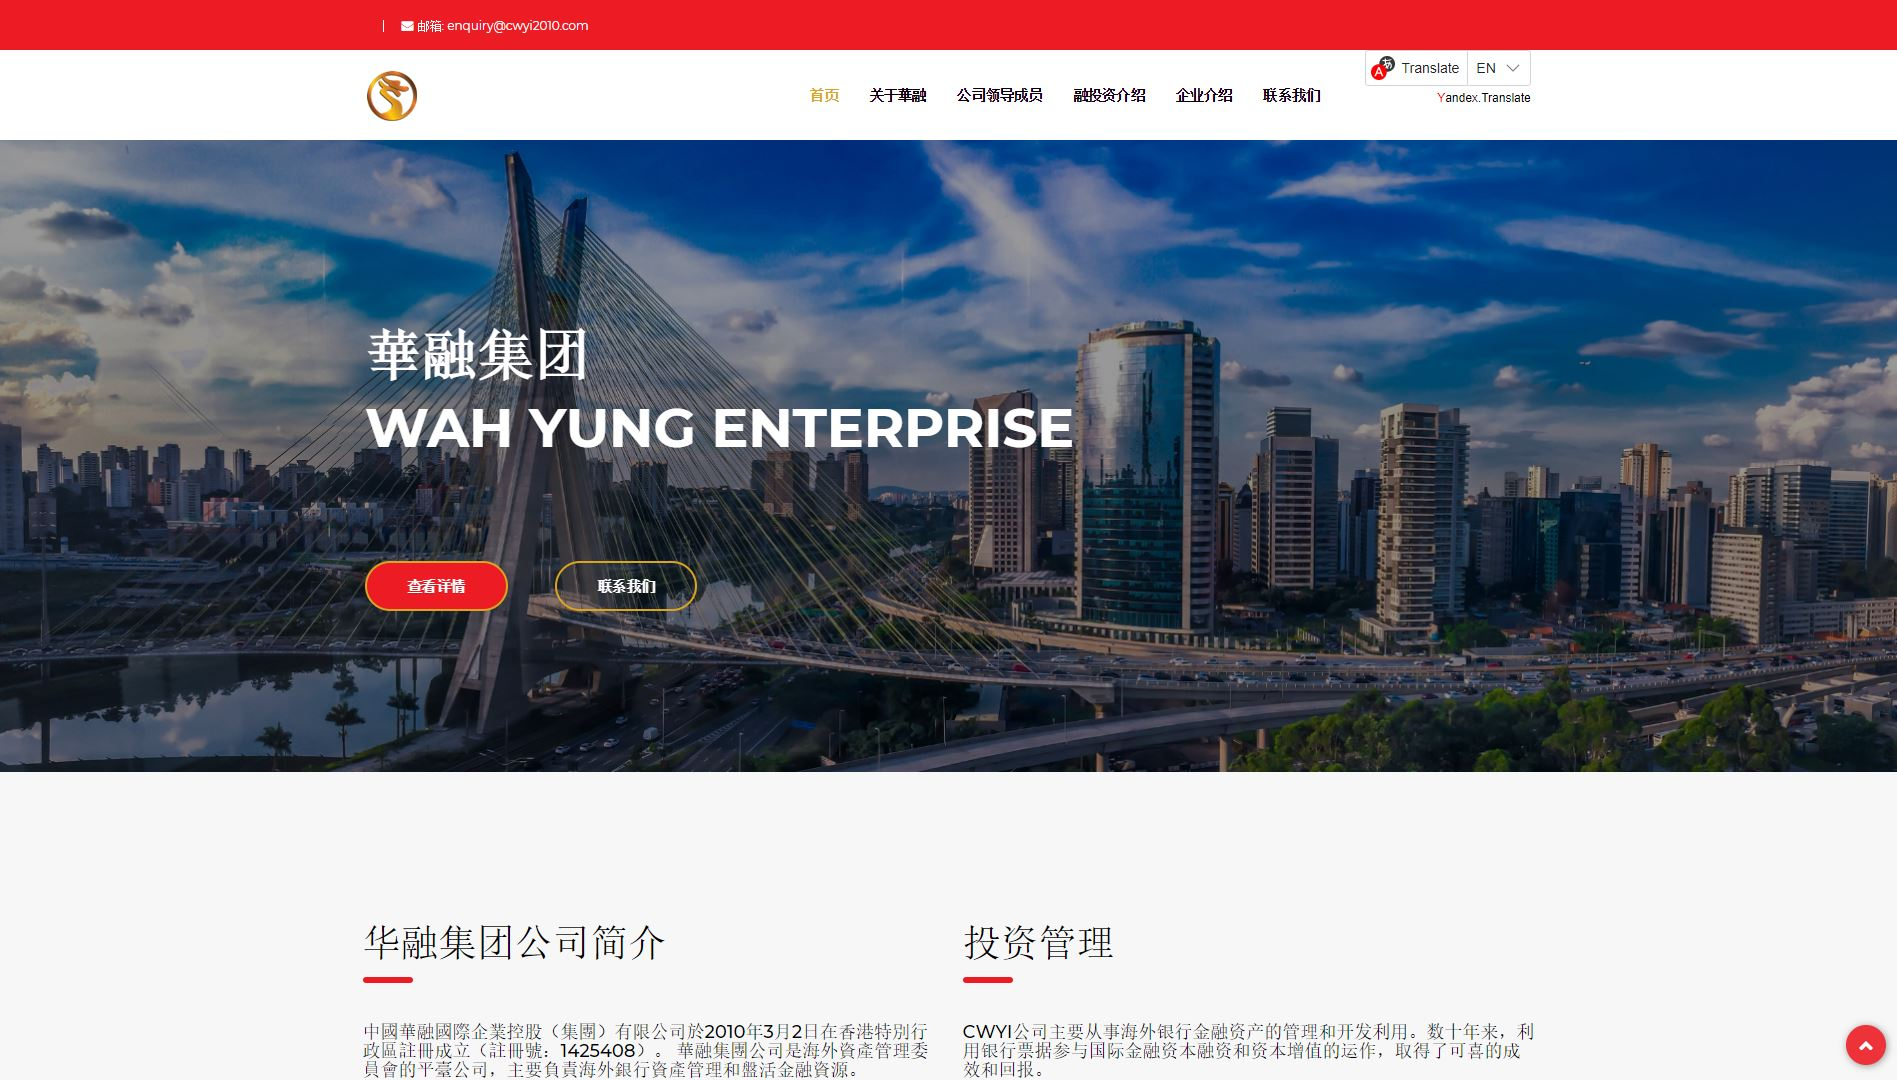 Singapore Web Design E Commerce Digital Marketing Singapore